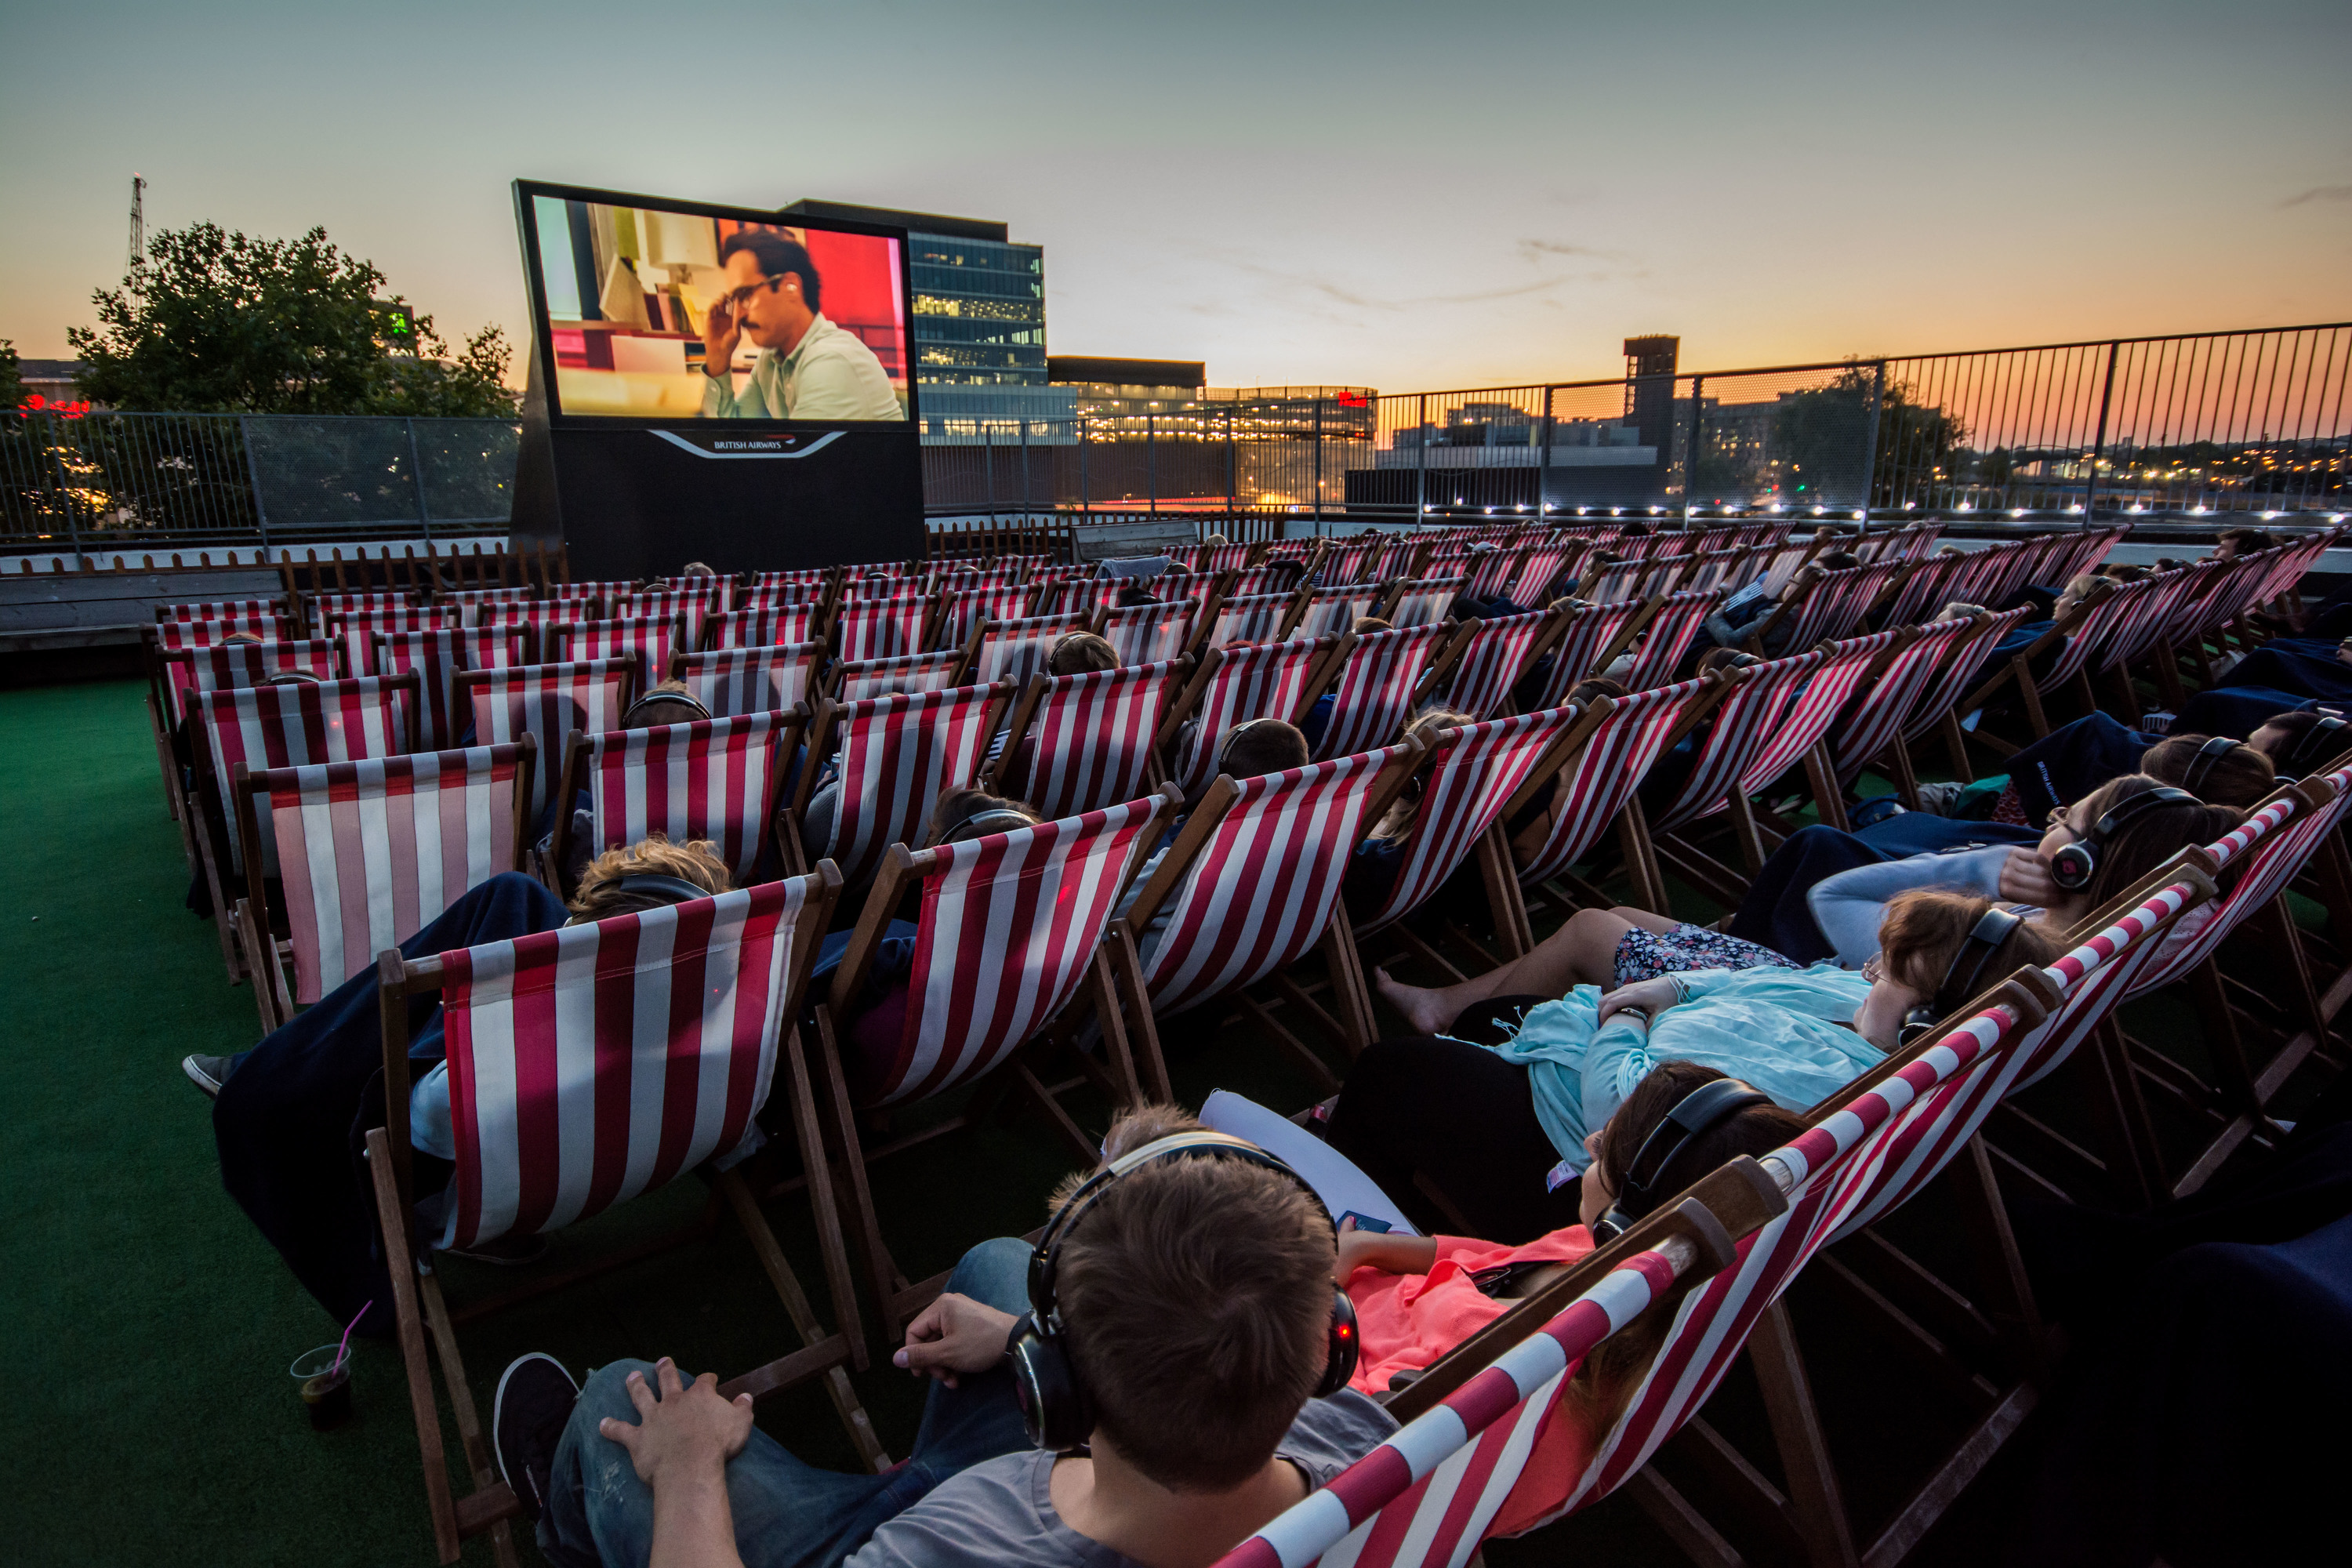 Movies in the park and summer outdoor screenings